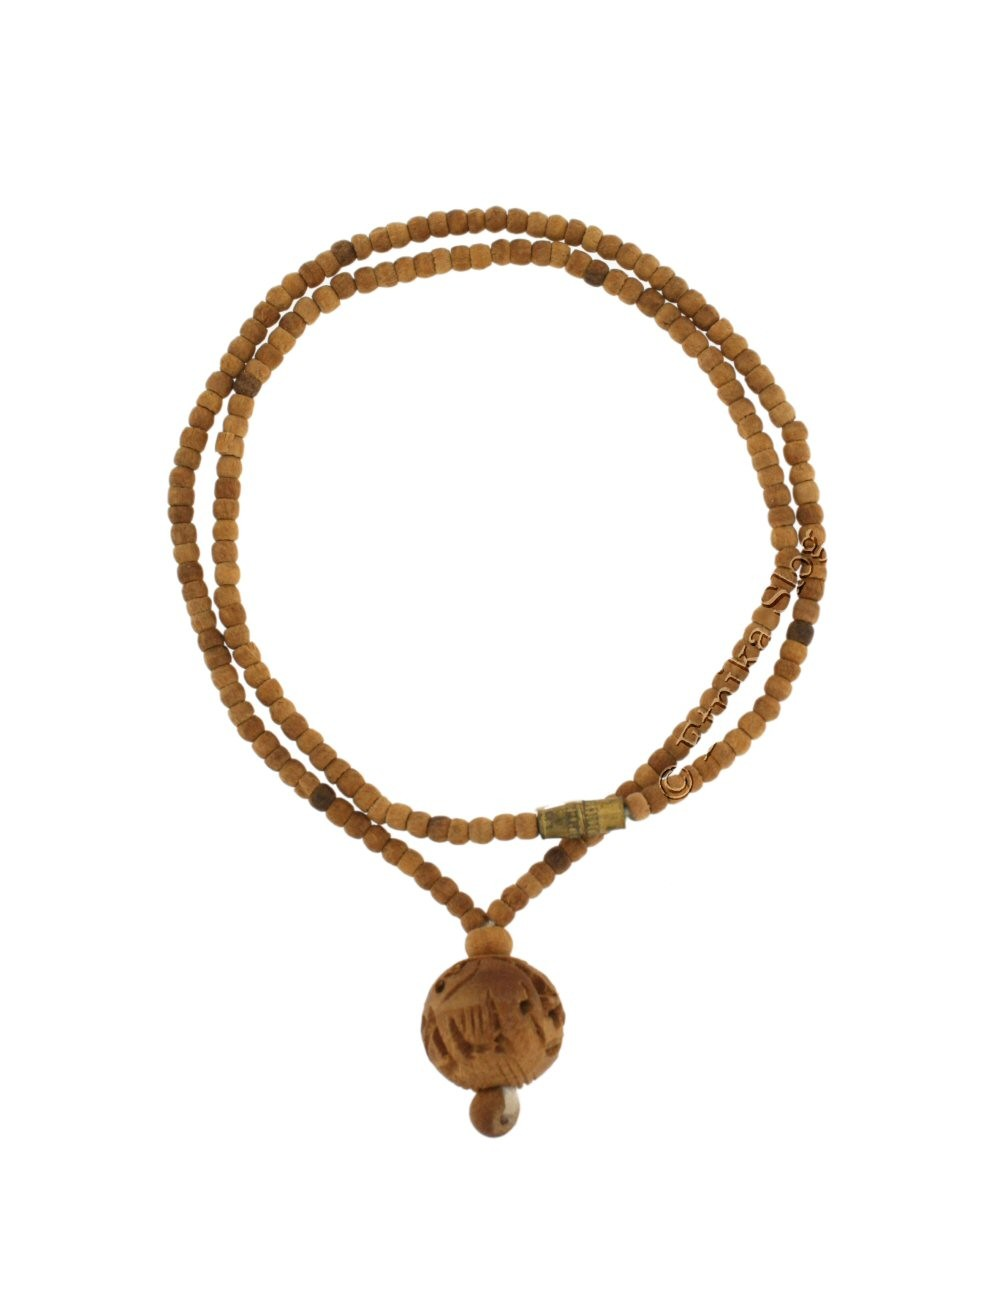 NECKLACES - WOOD LE-CL31-04 - Oriente Import S.r.l.